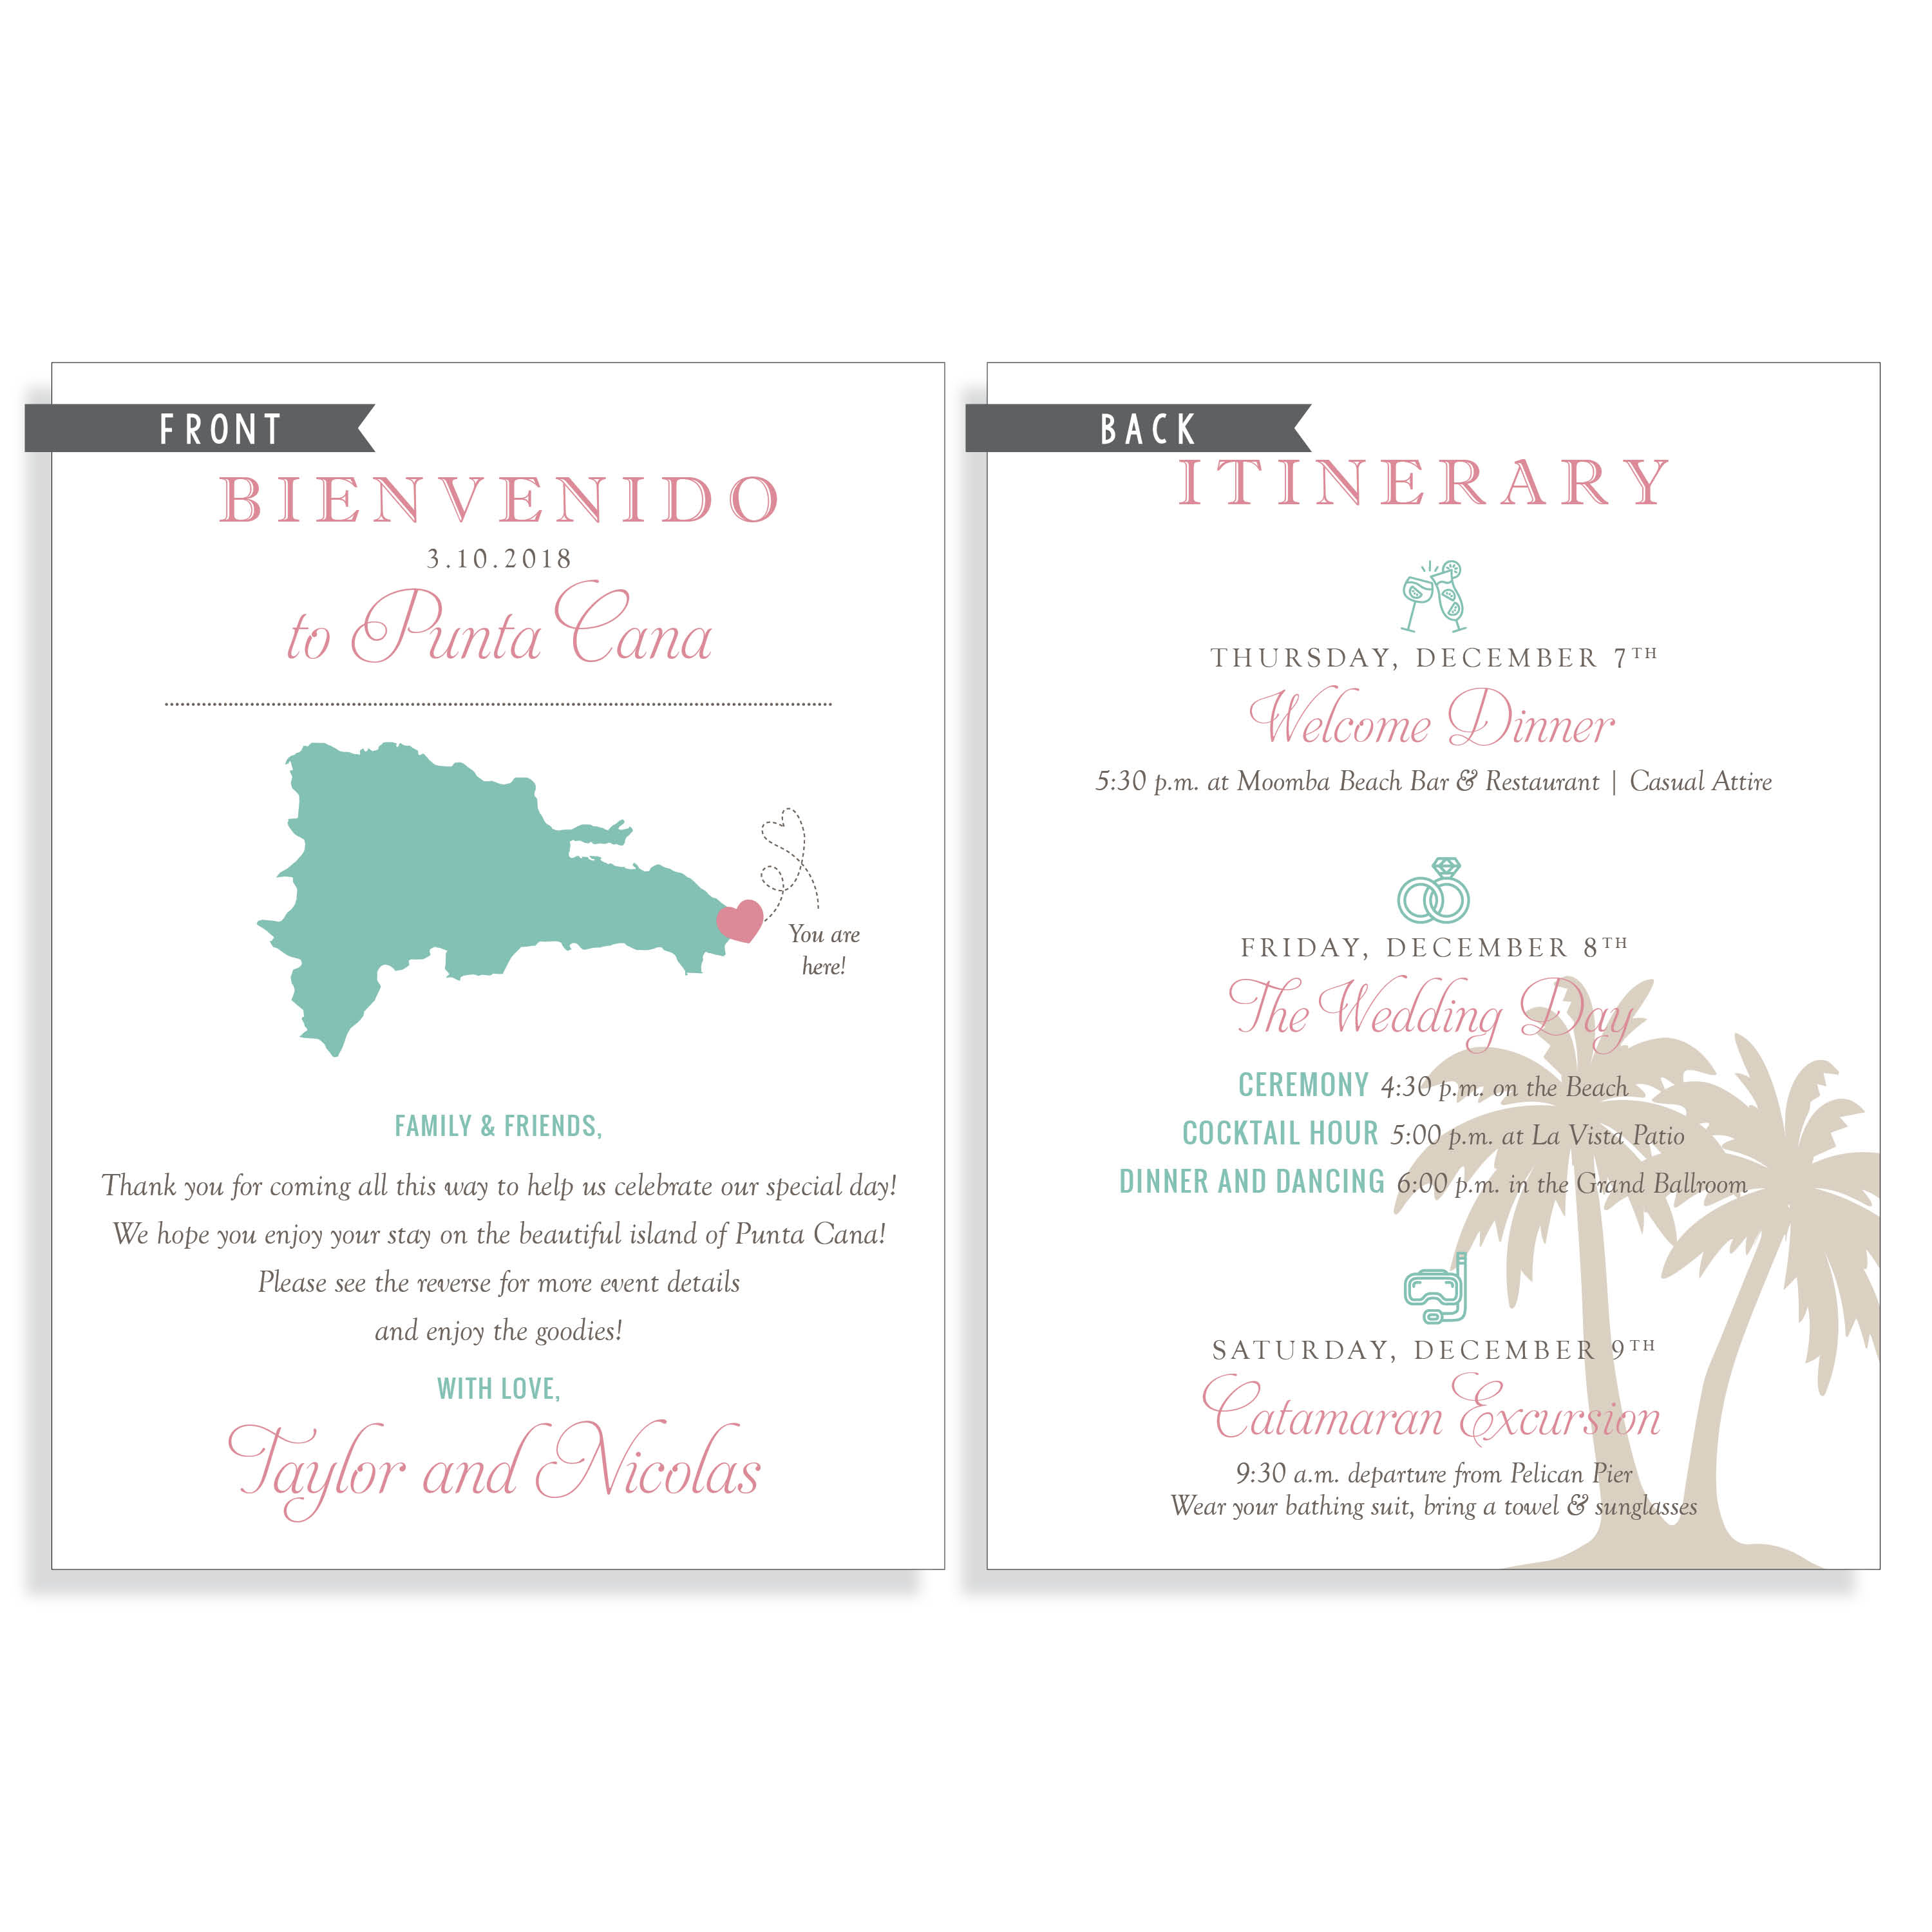 Destination Wedding Welcome Note and Itinerary | Posted Fete